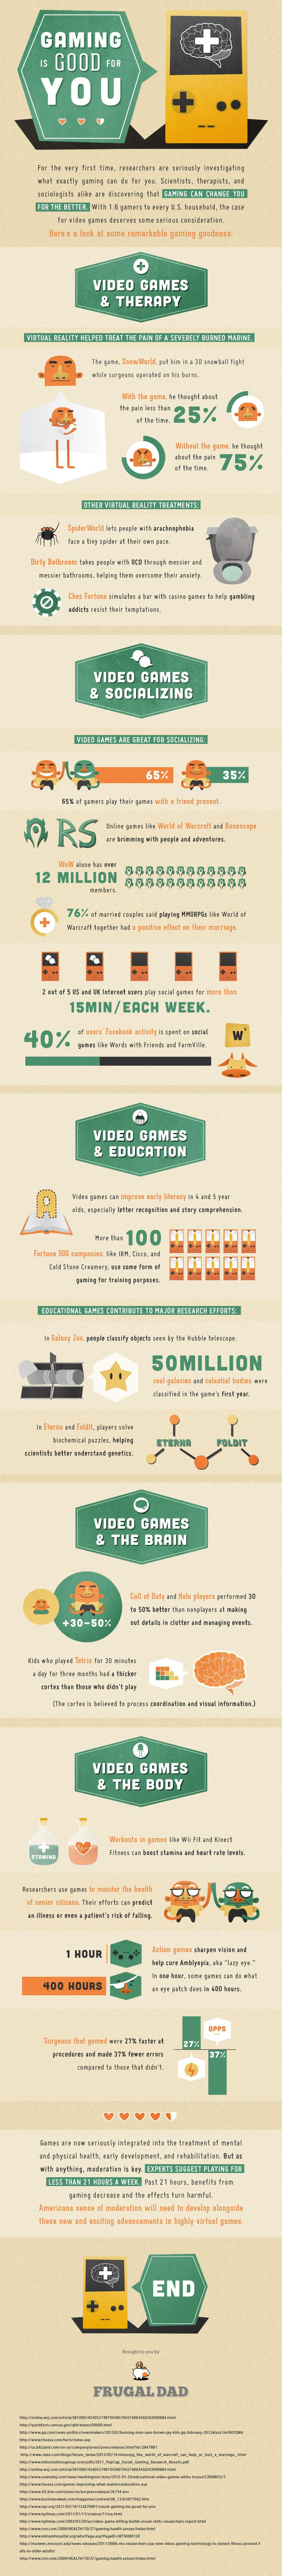 Gaming is Good for You Infographic